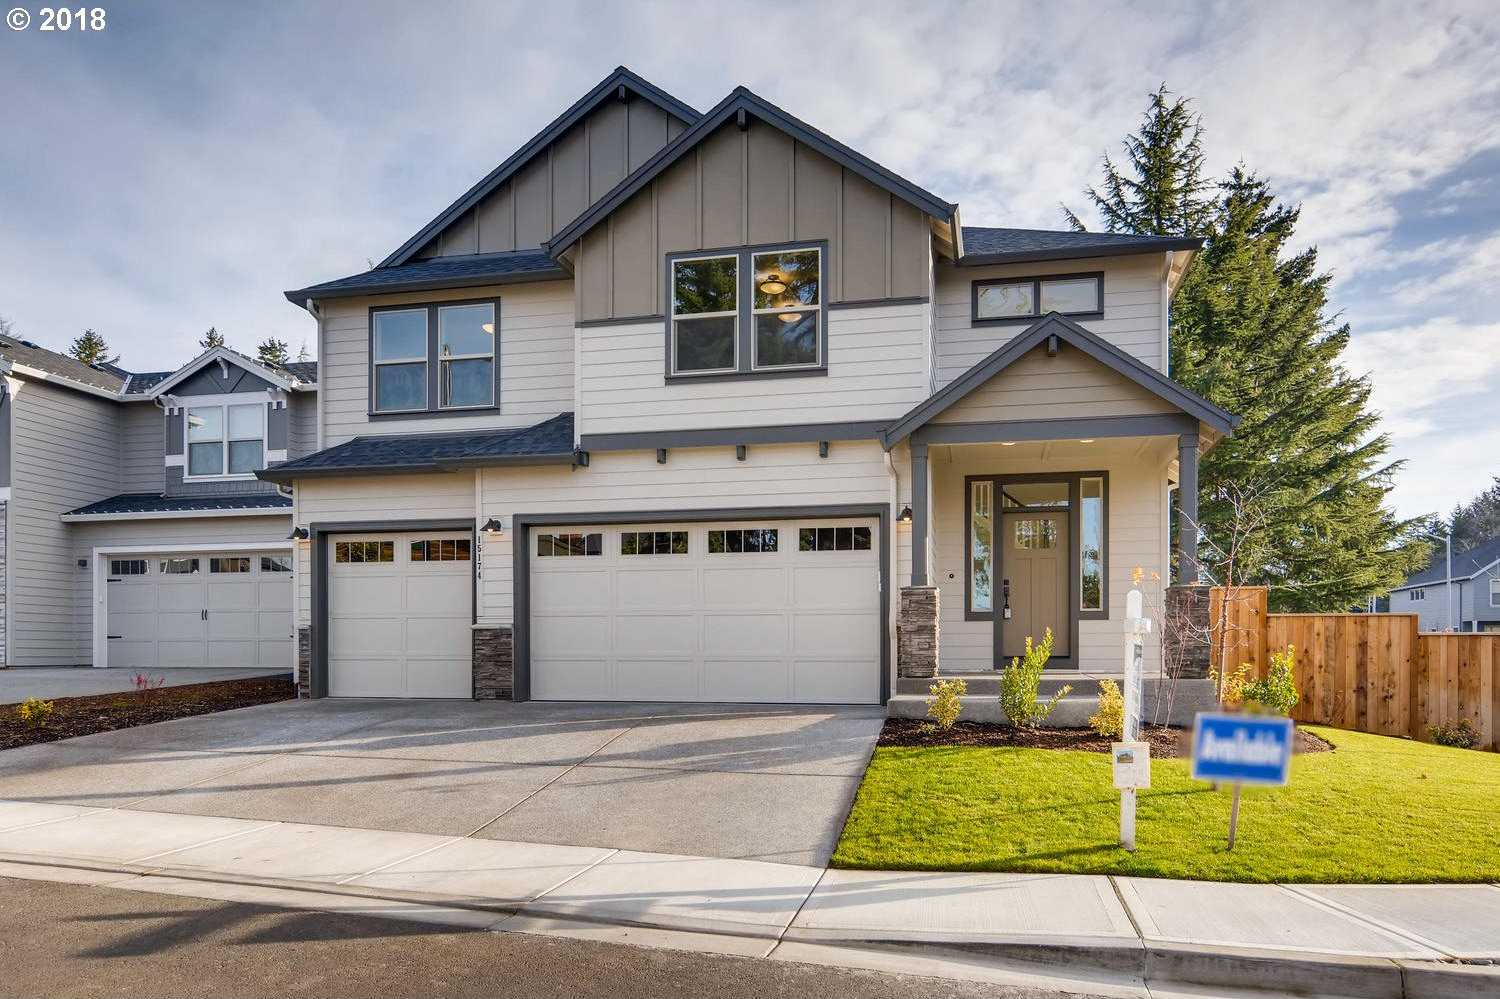 $619,950 - 6Br/3Ba -  for Sale in Tigard